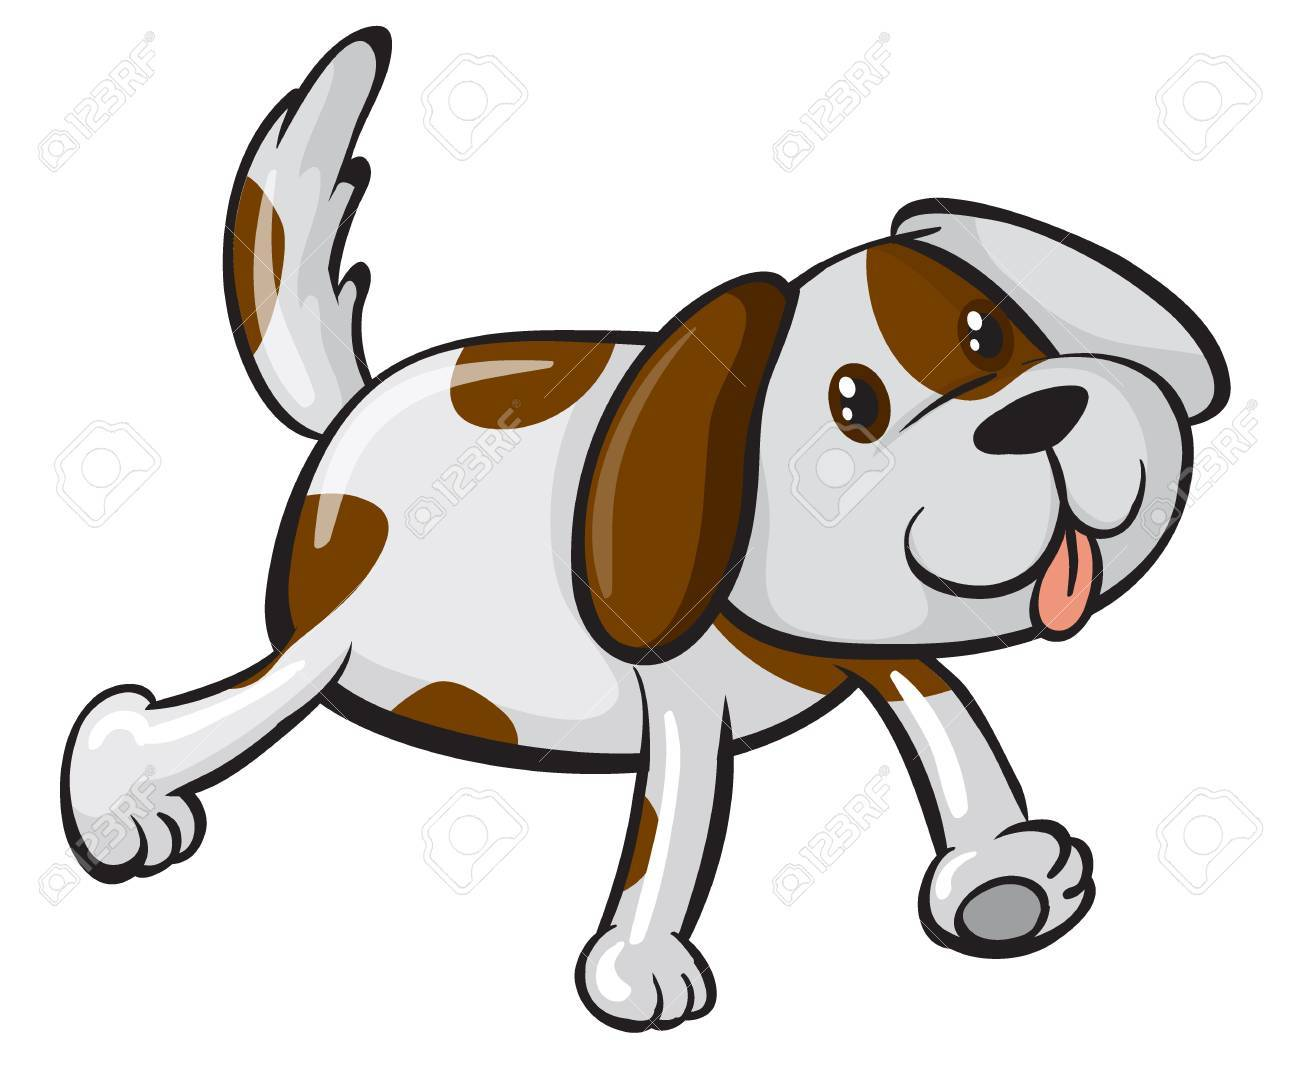 Illustration of a smiling dog on a white background Stock Vector - 17100336